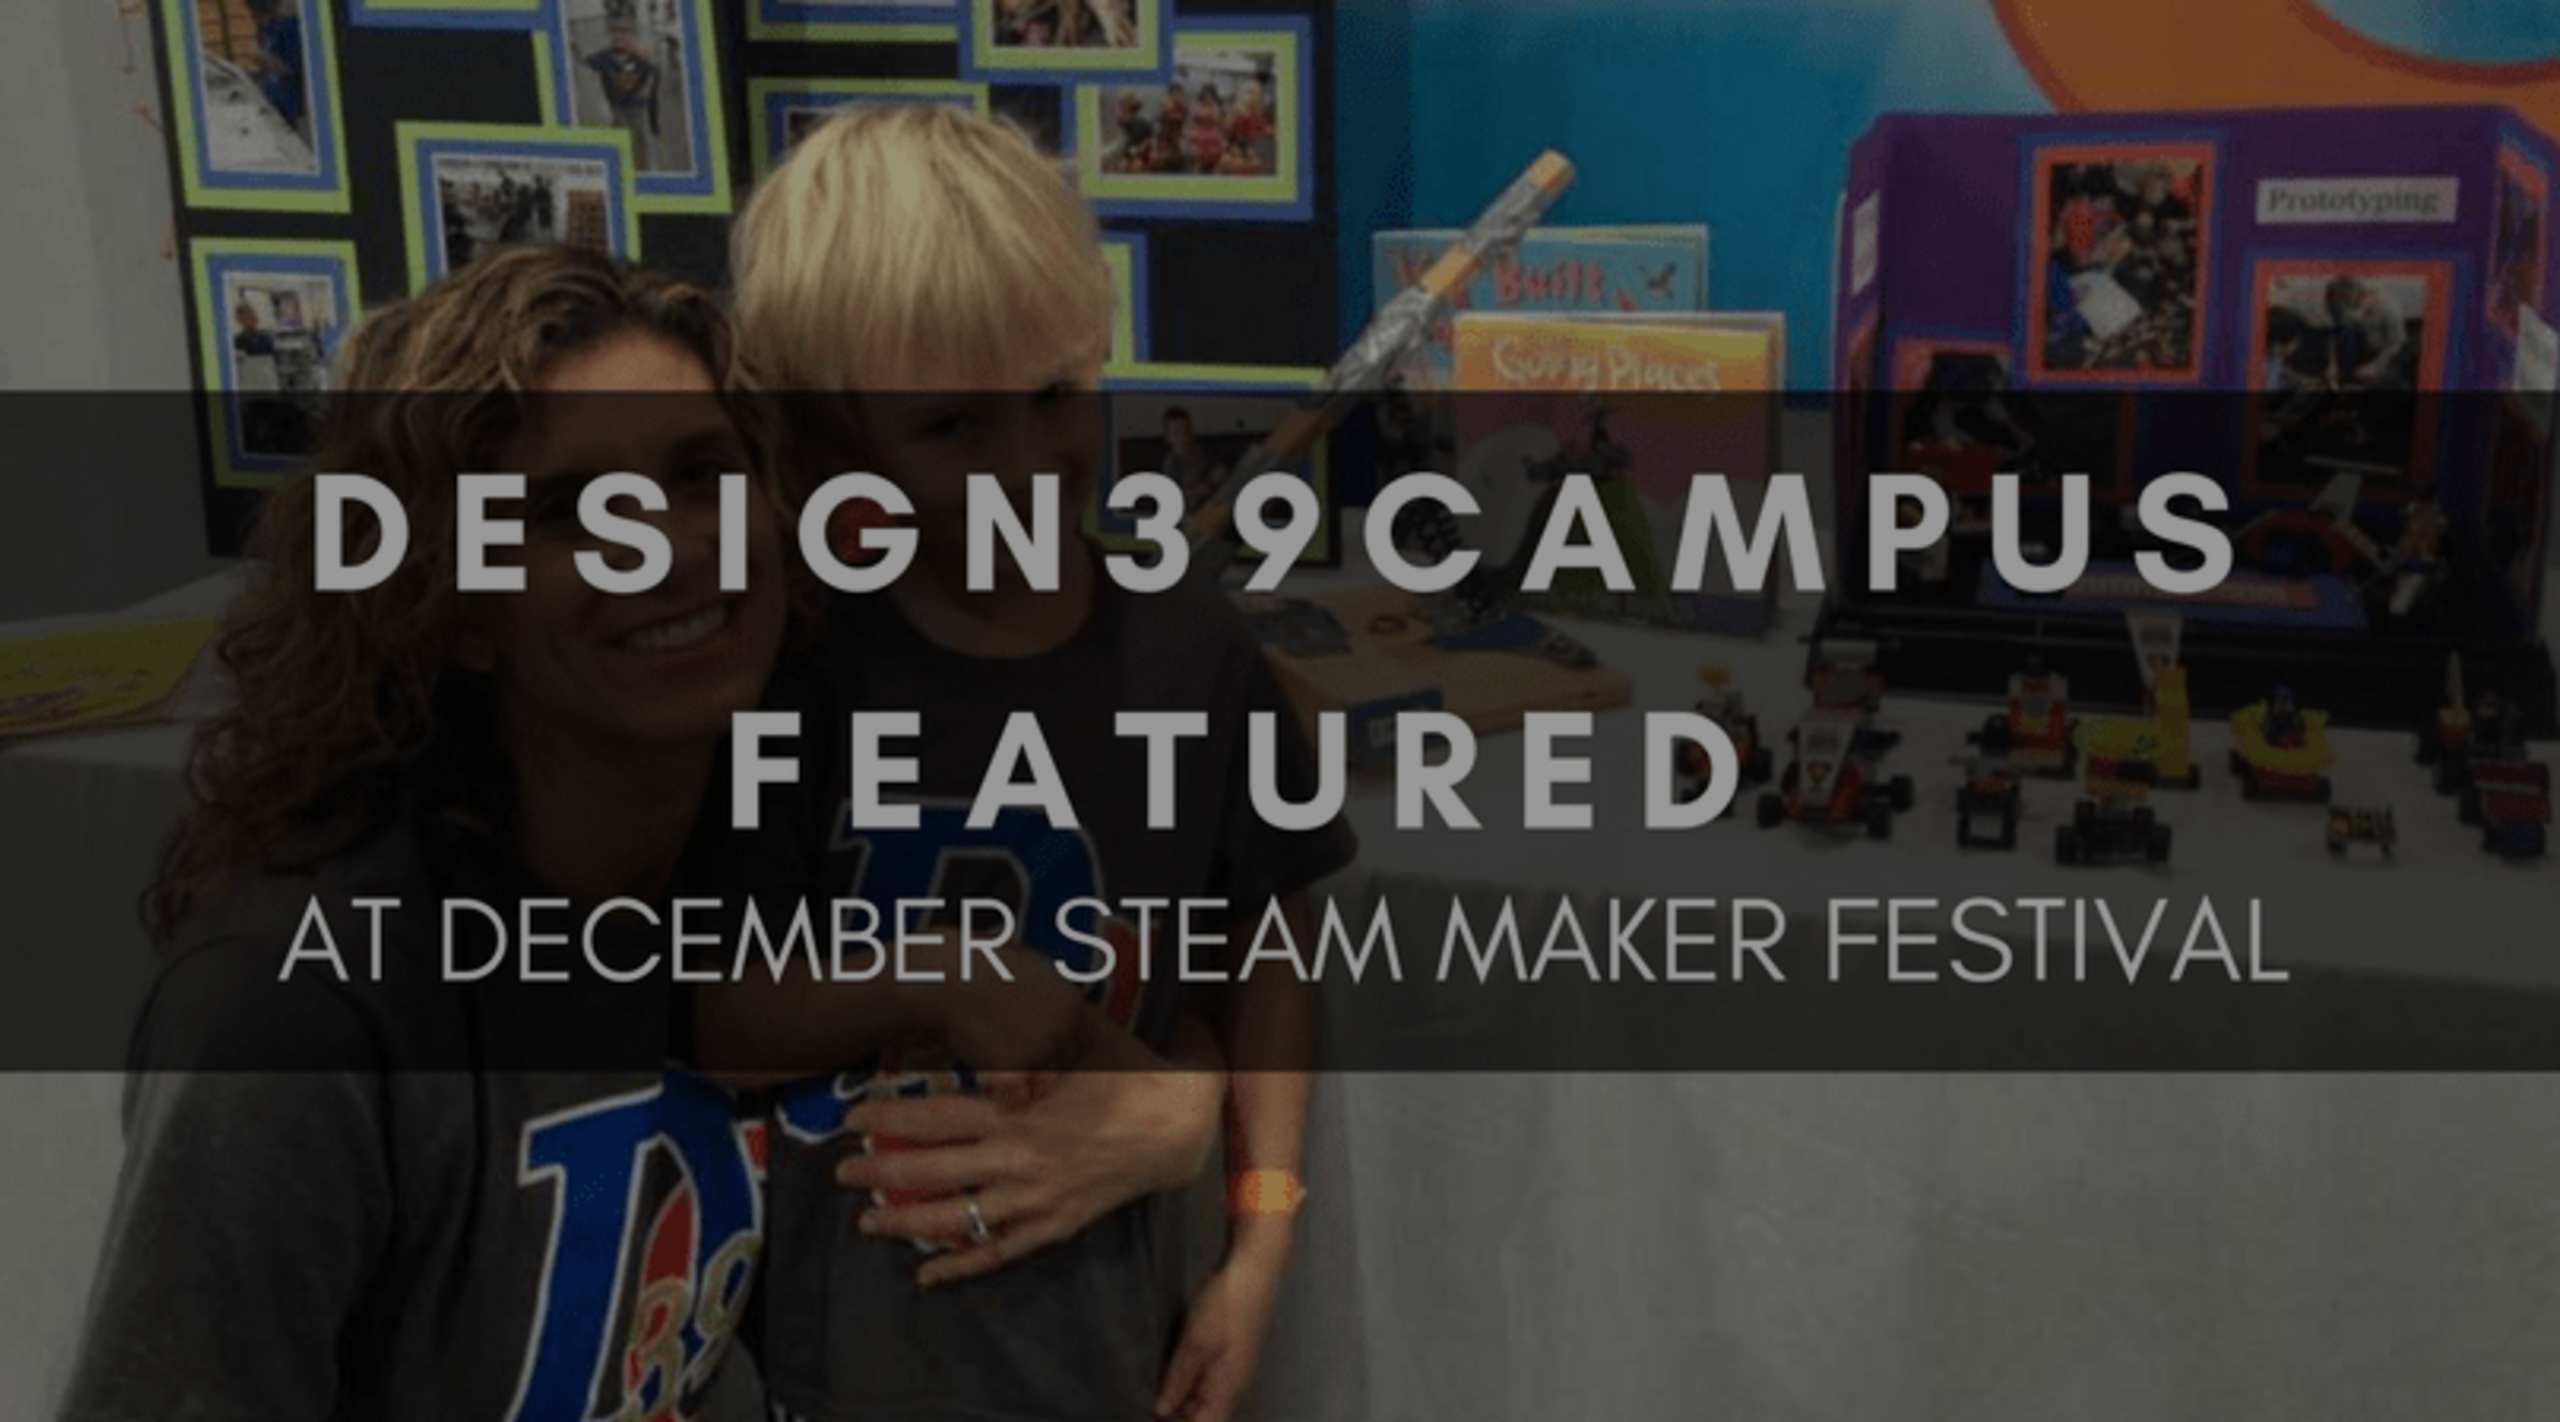 DESIGN39CAMPUS FEATURED AT DECEMBER STEAM MAKER FESTIVAL